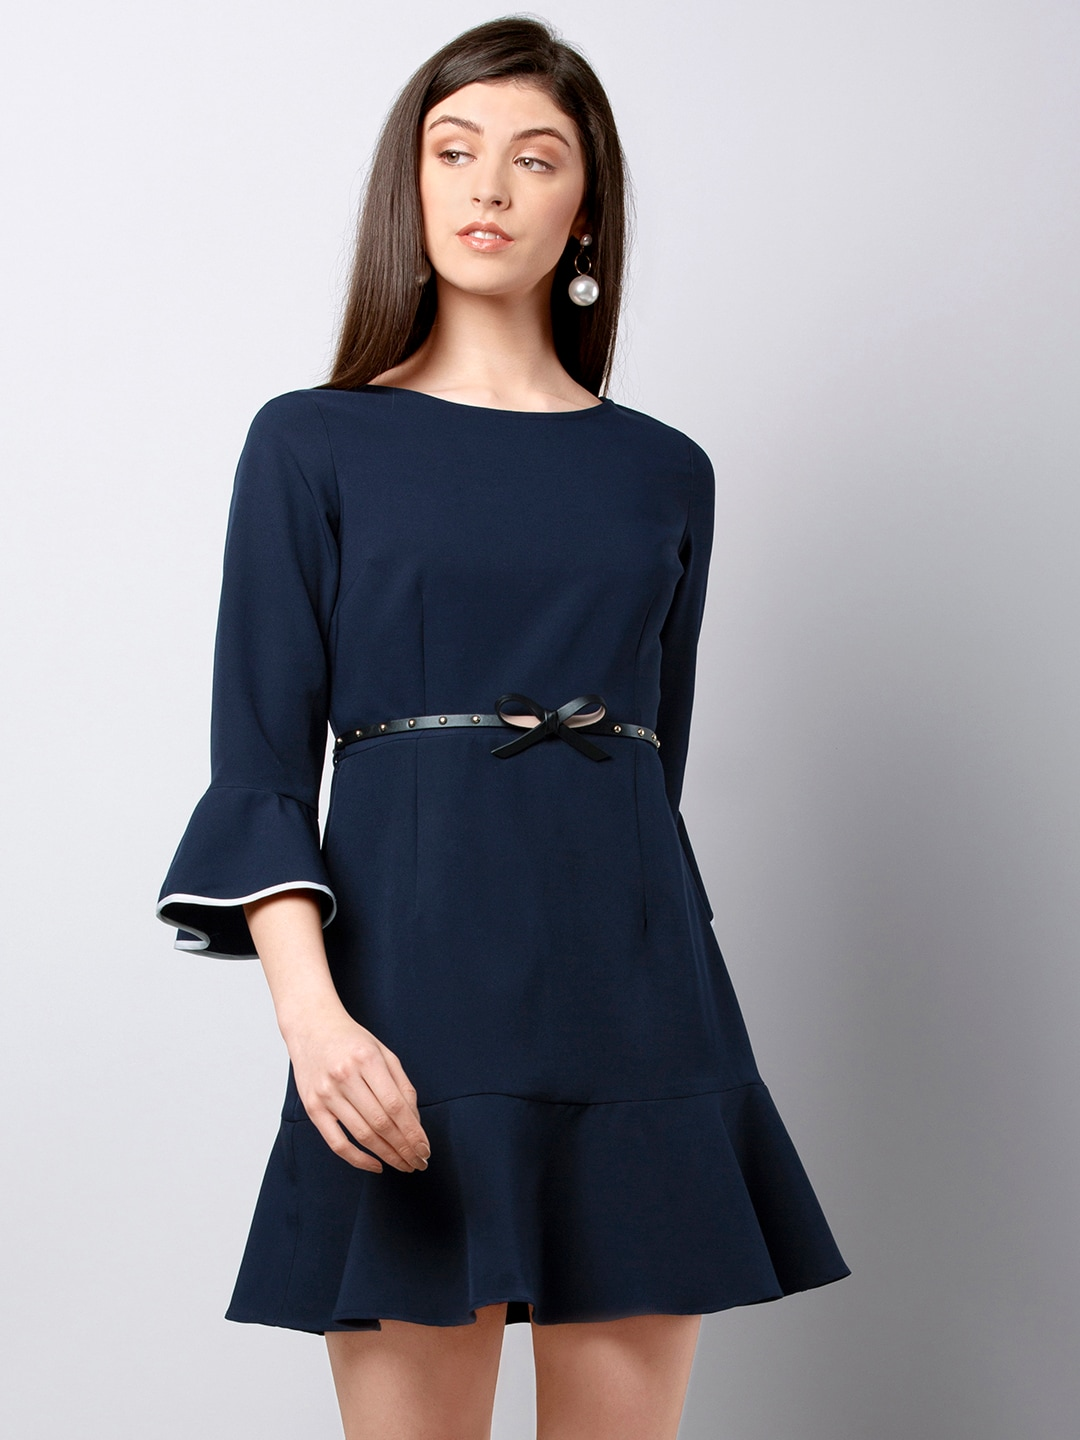 8b4ac2820533e Dresses And Jumpsuits - Buy Dresses And Jumpsuits online in India